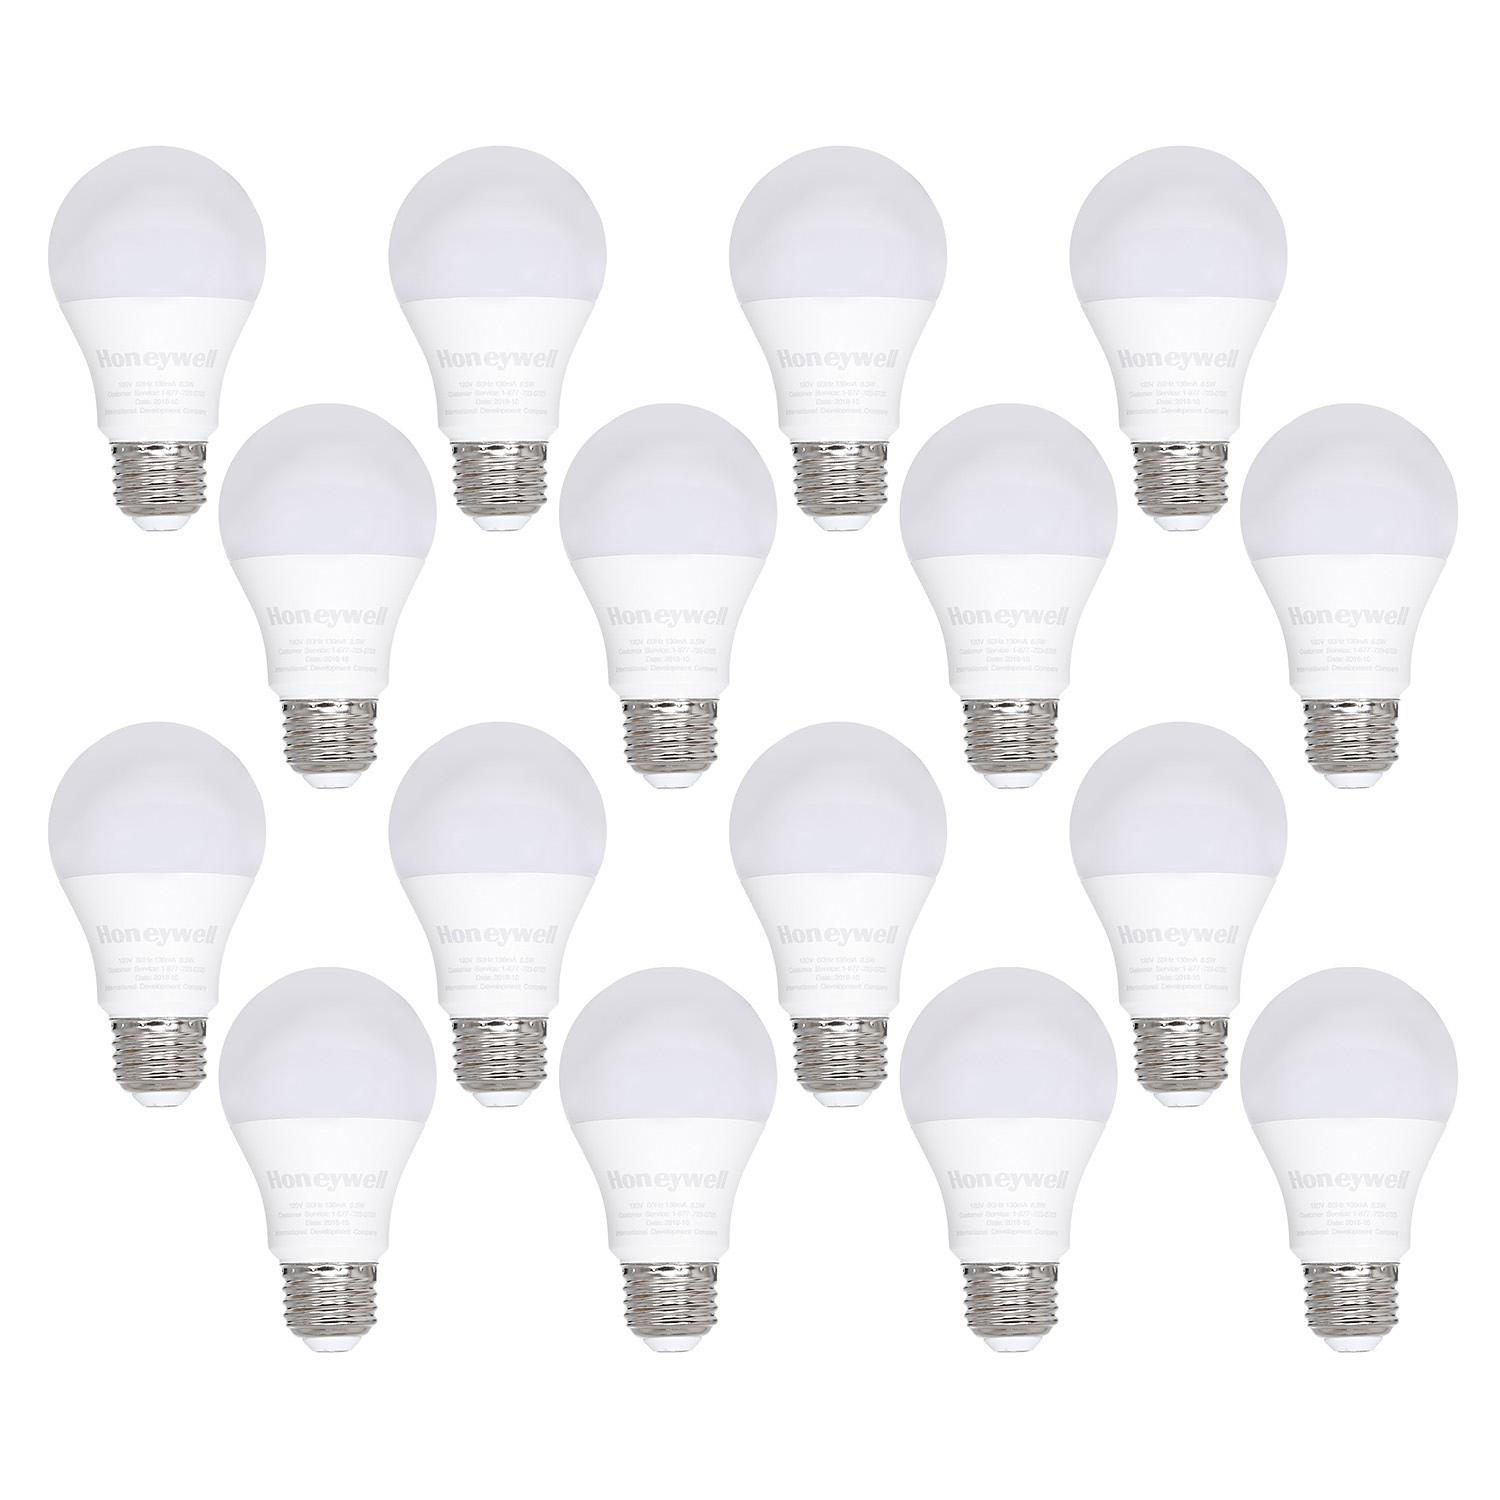 16-Pack Honeywell 800 Lumen A19 LED Light Bulb 8.5W (60W Equivalent)